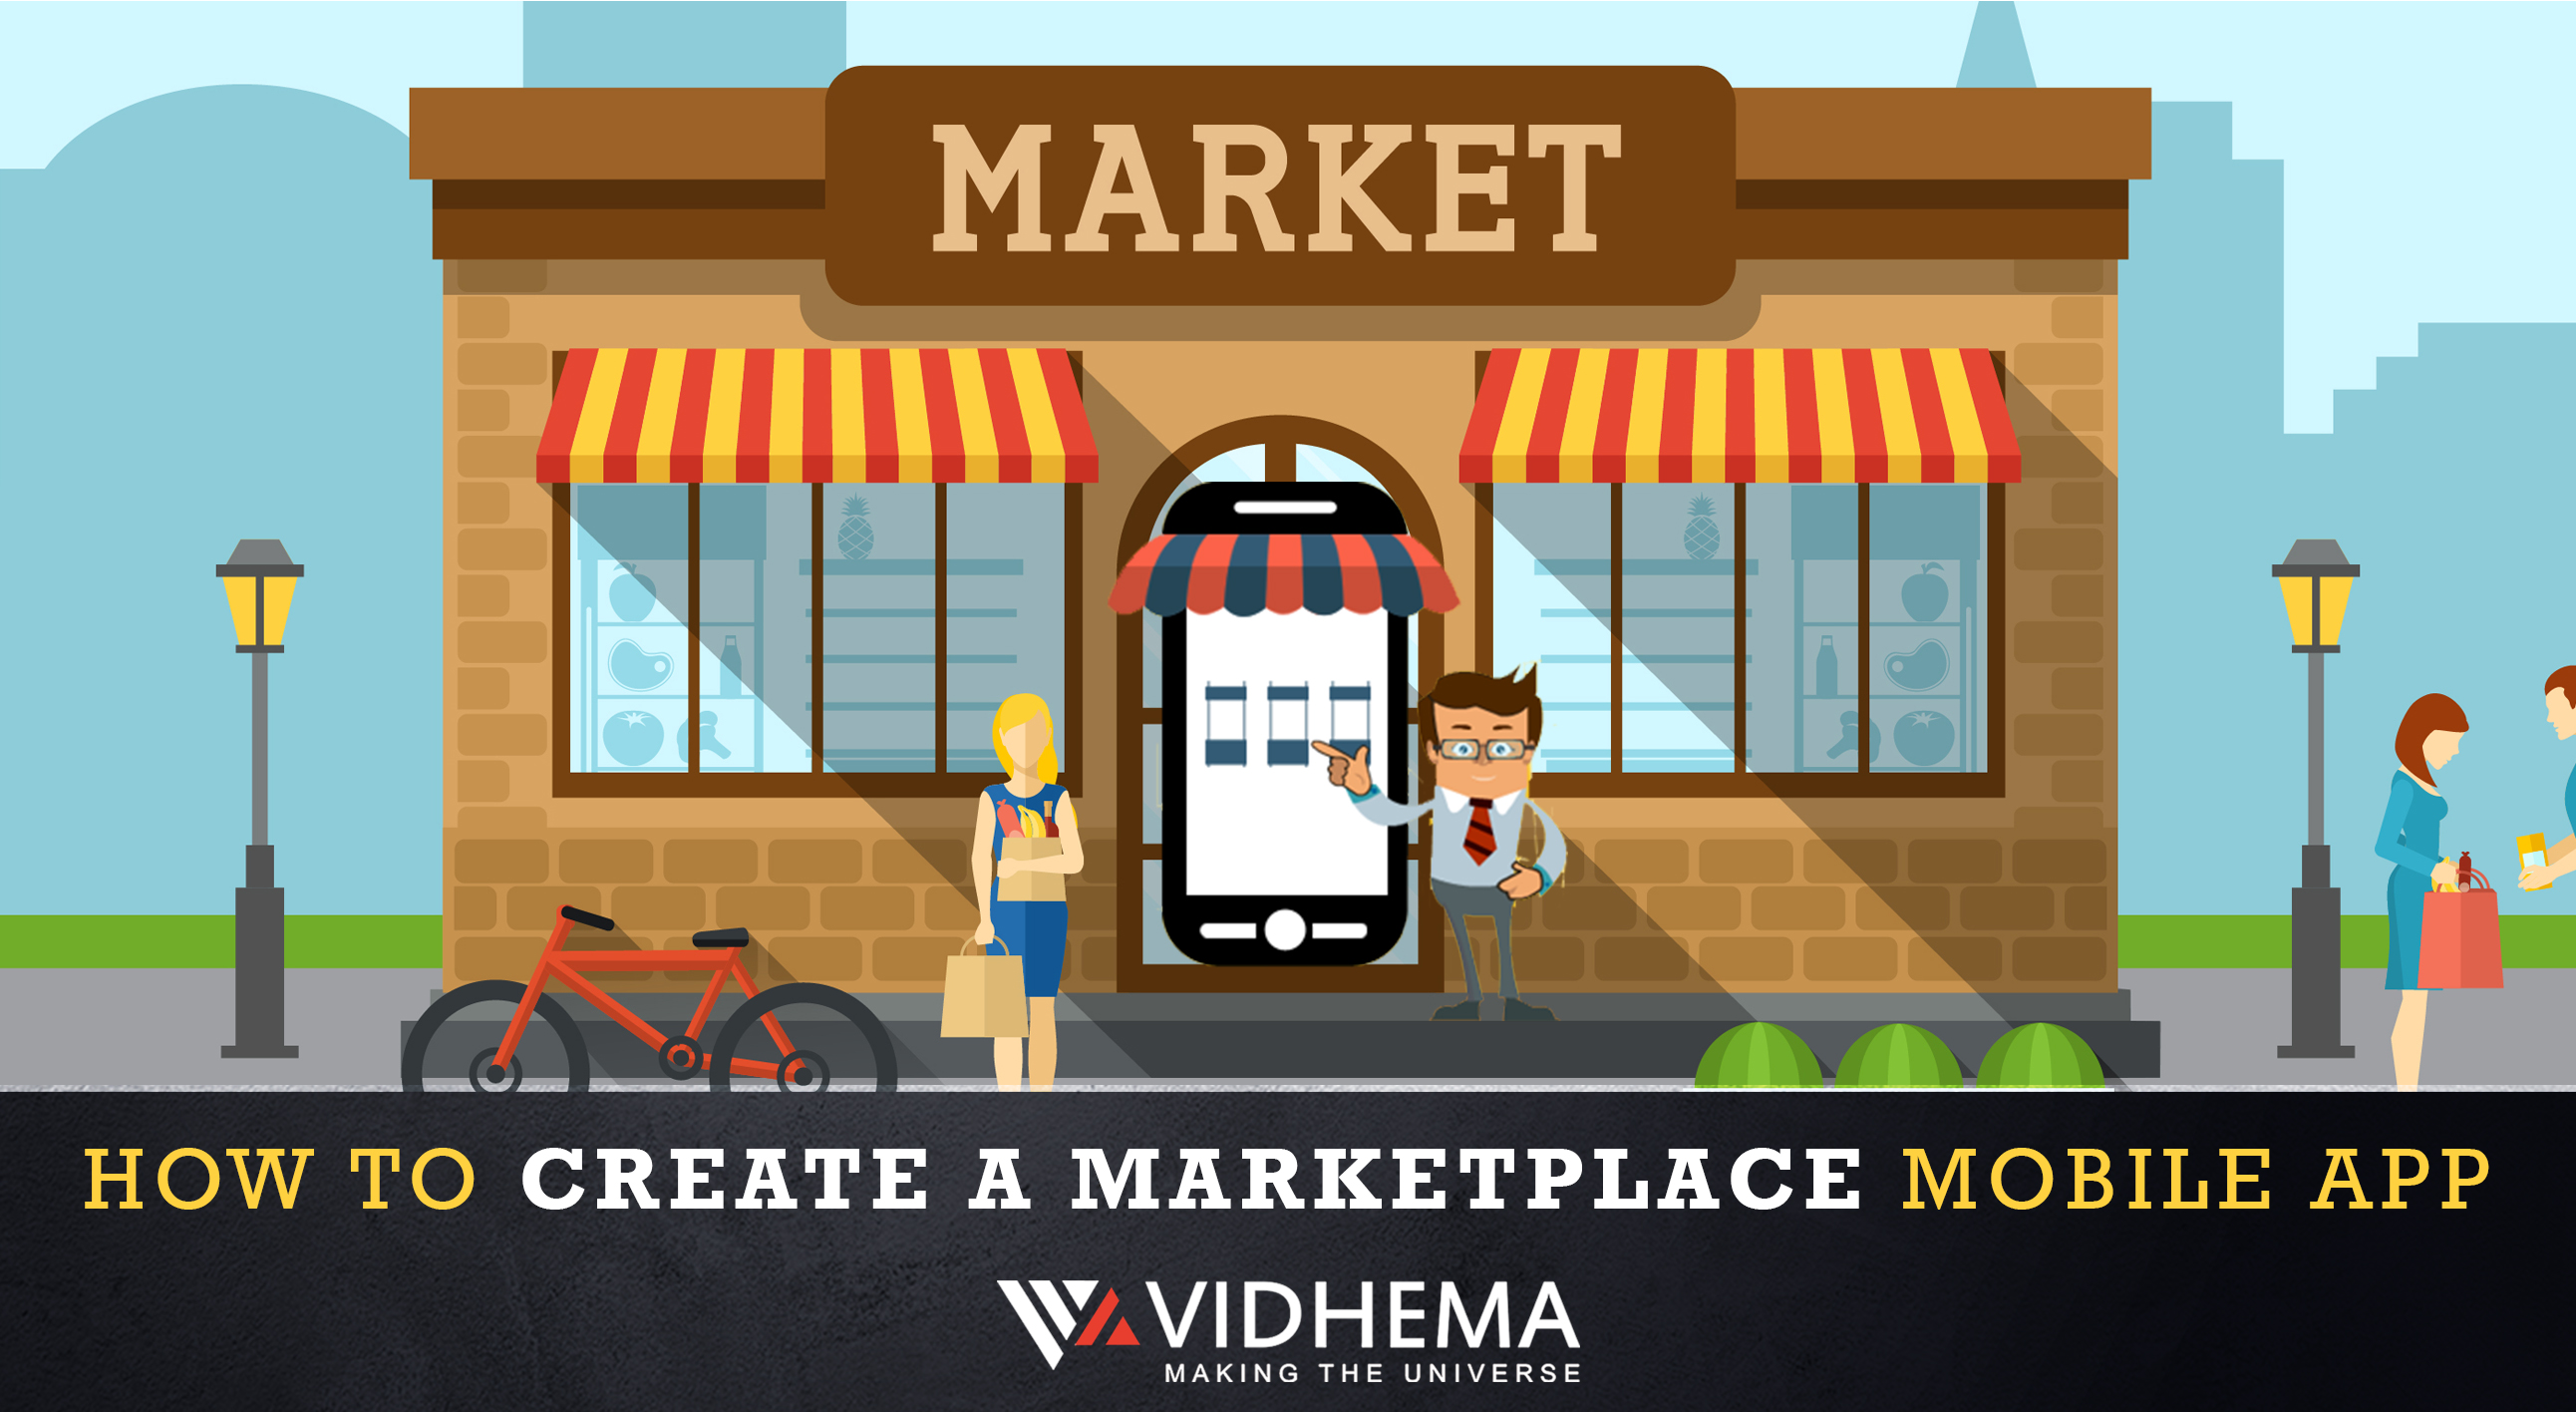 How To Create a Marketplace Mobile App